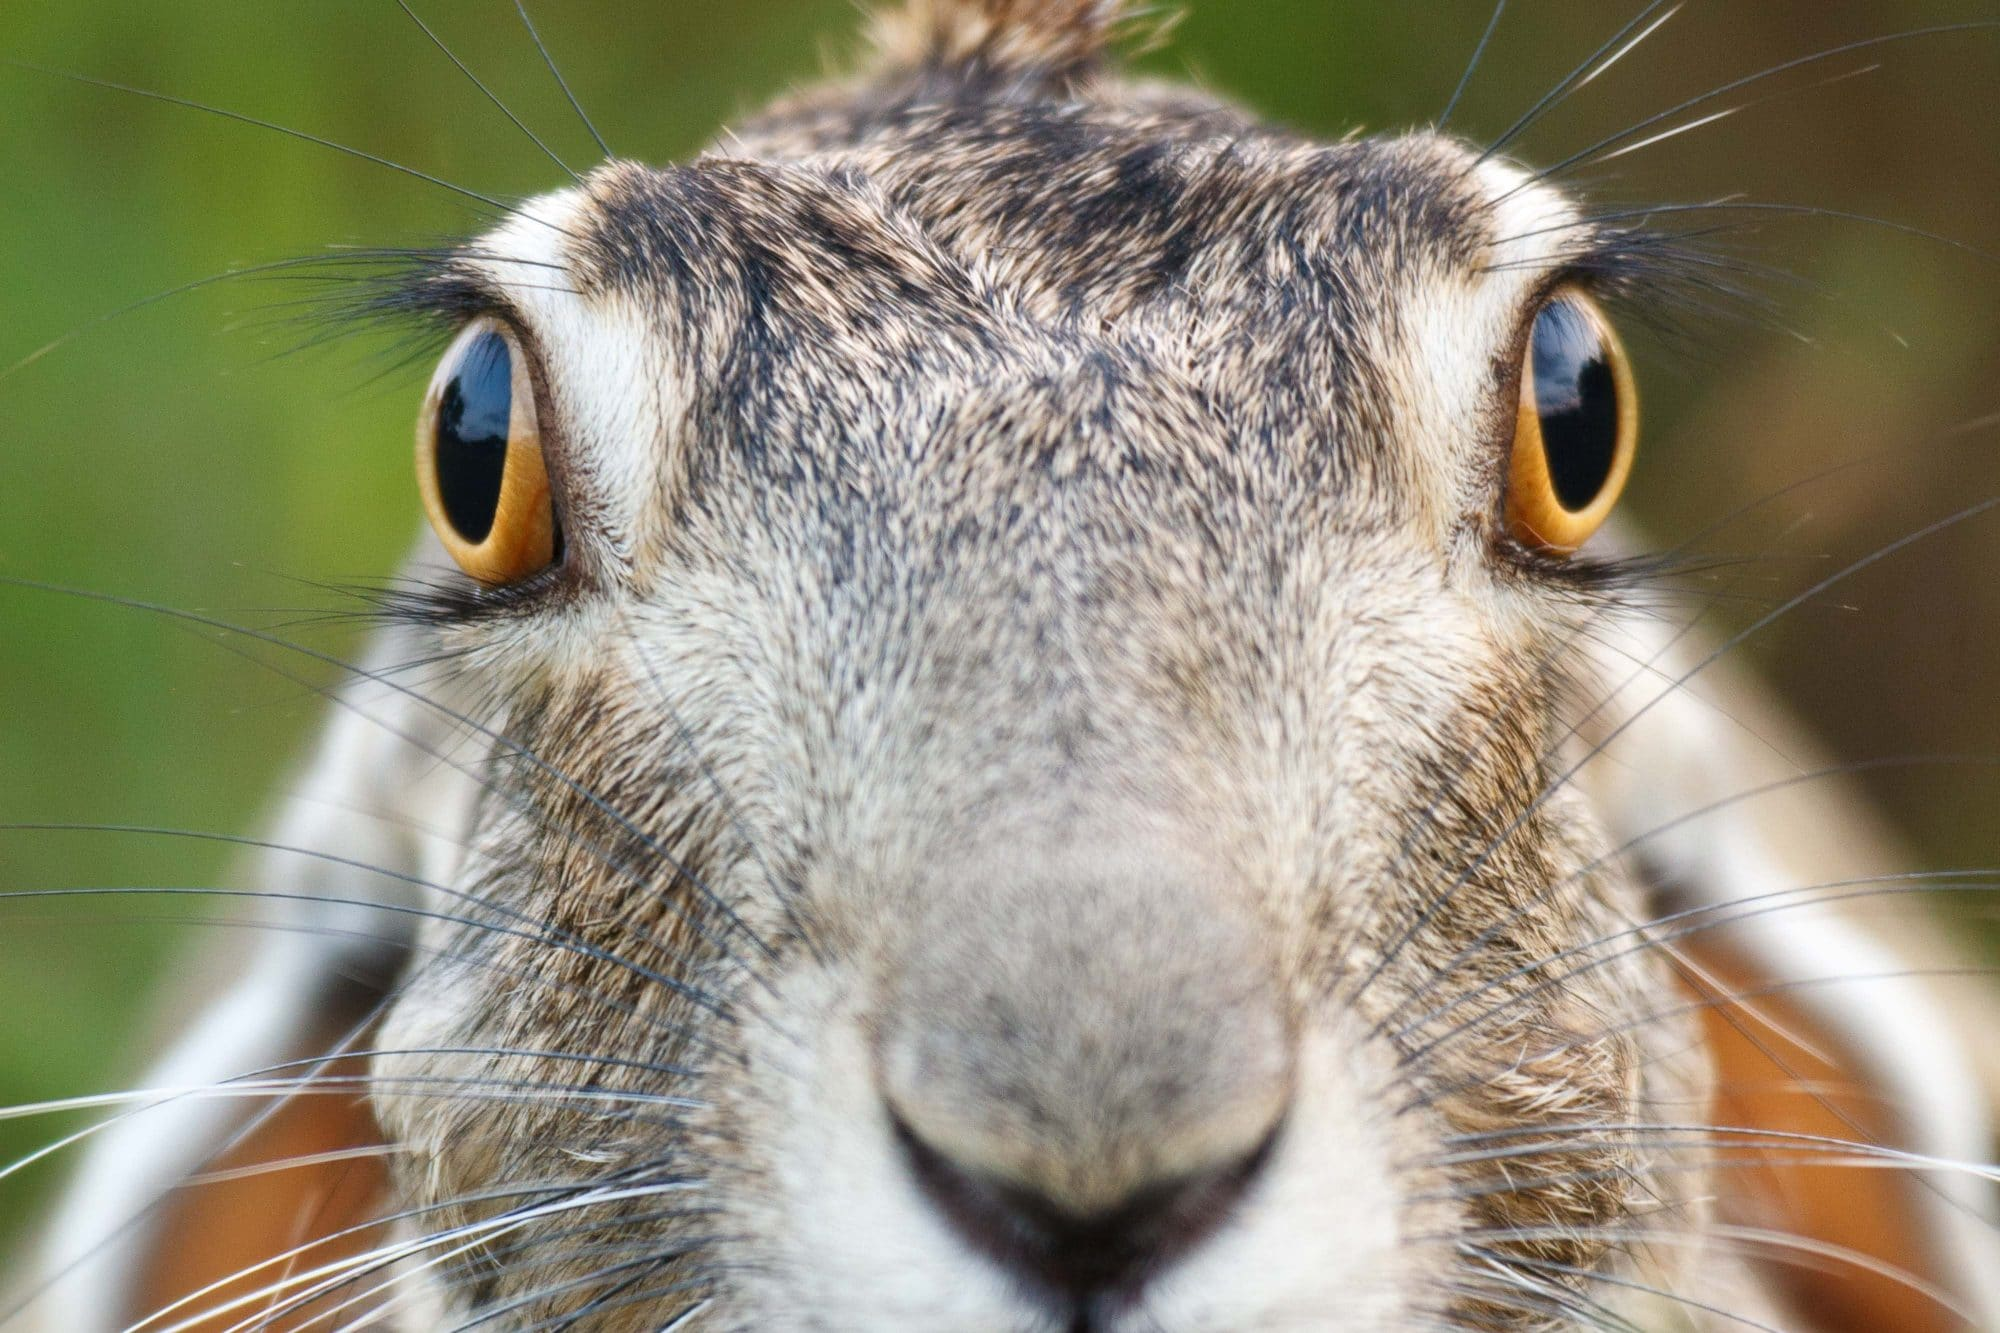 Black-tailed Jackrabbit portrait by Jay Goodrich